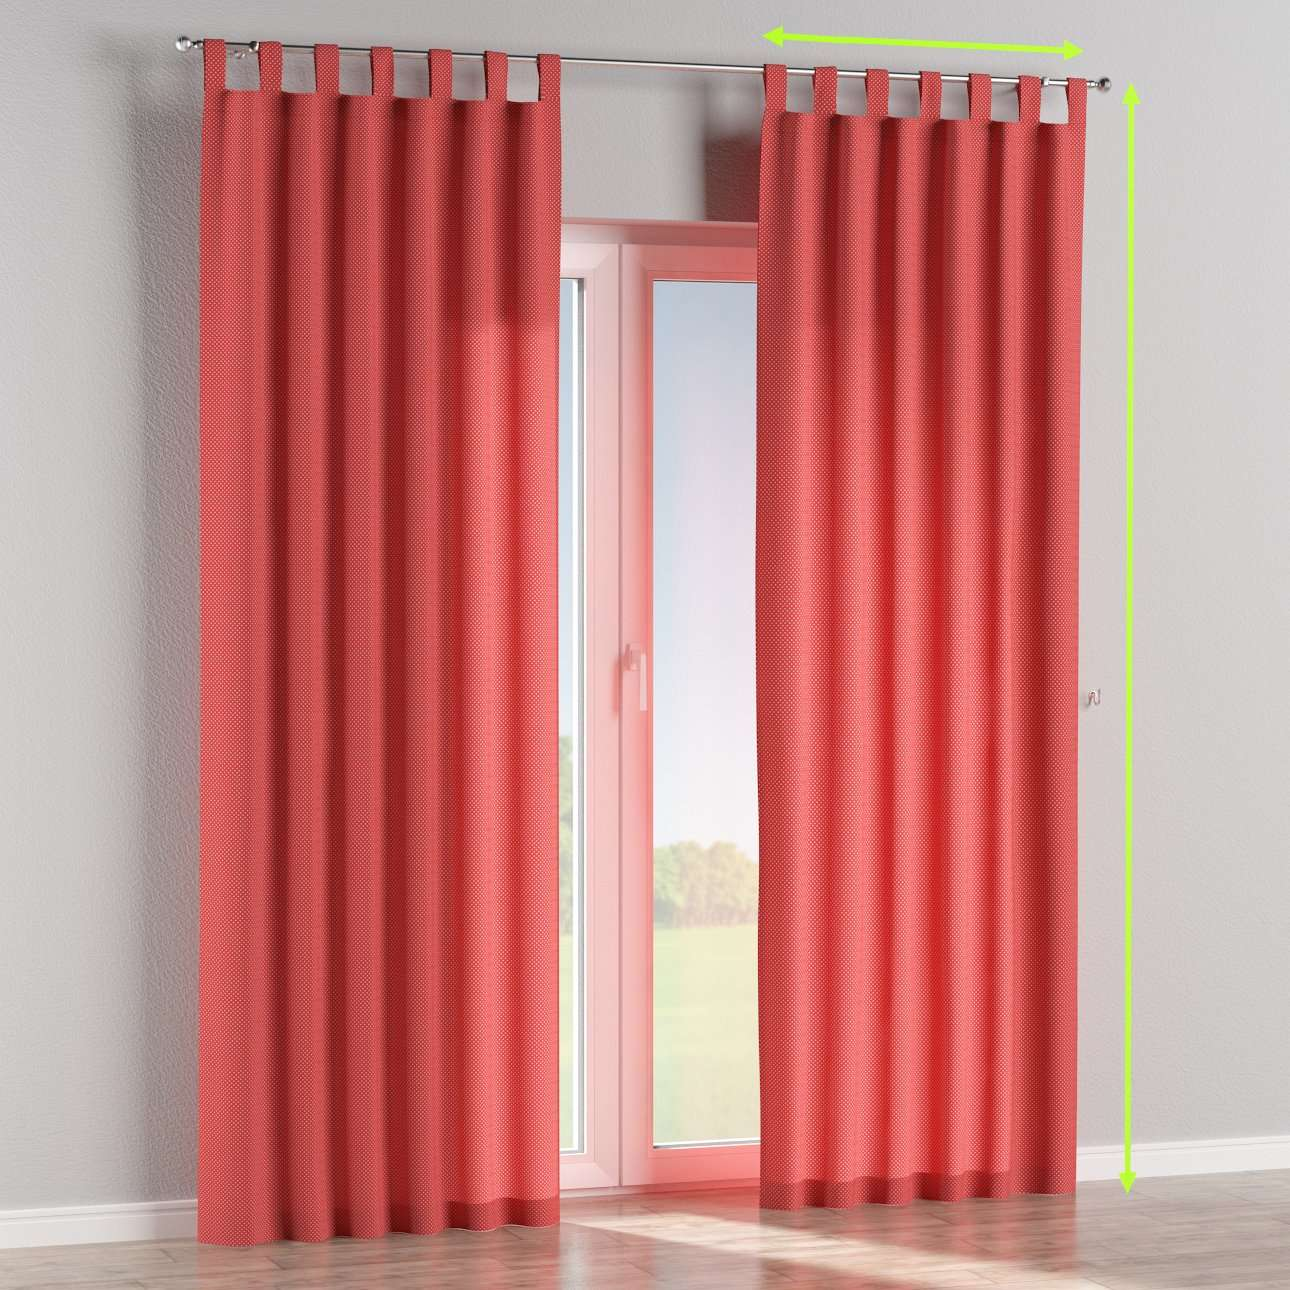 Tab top lined curtains in collection Ashley, fabric: 137-50